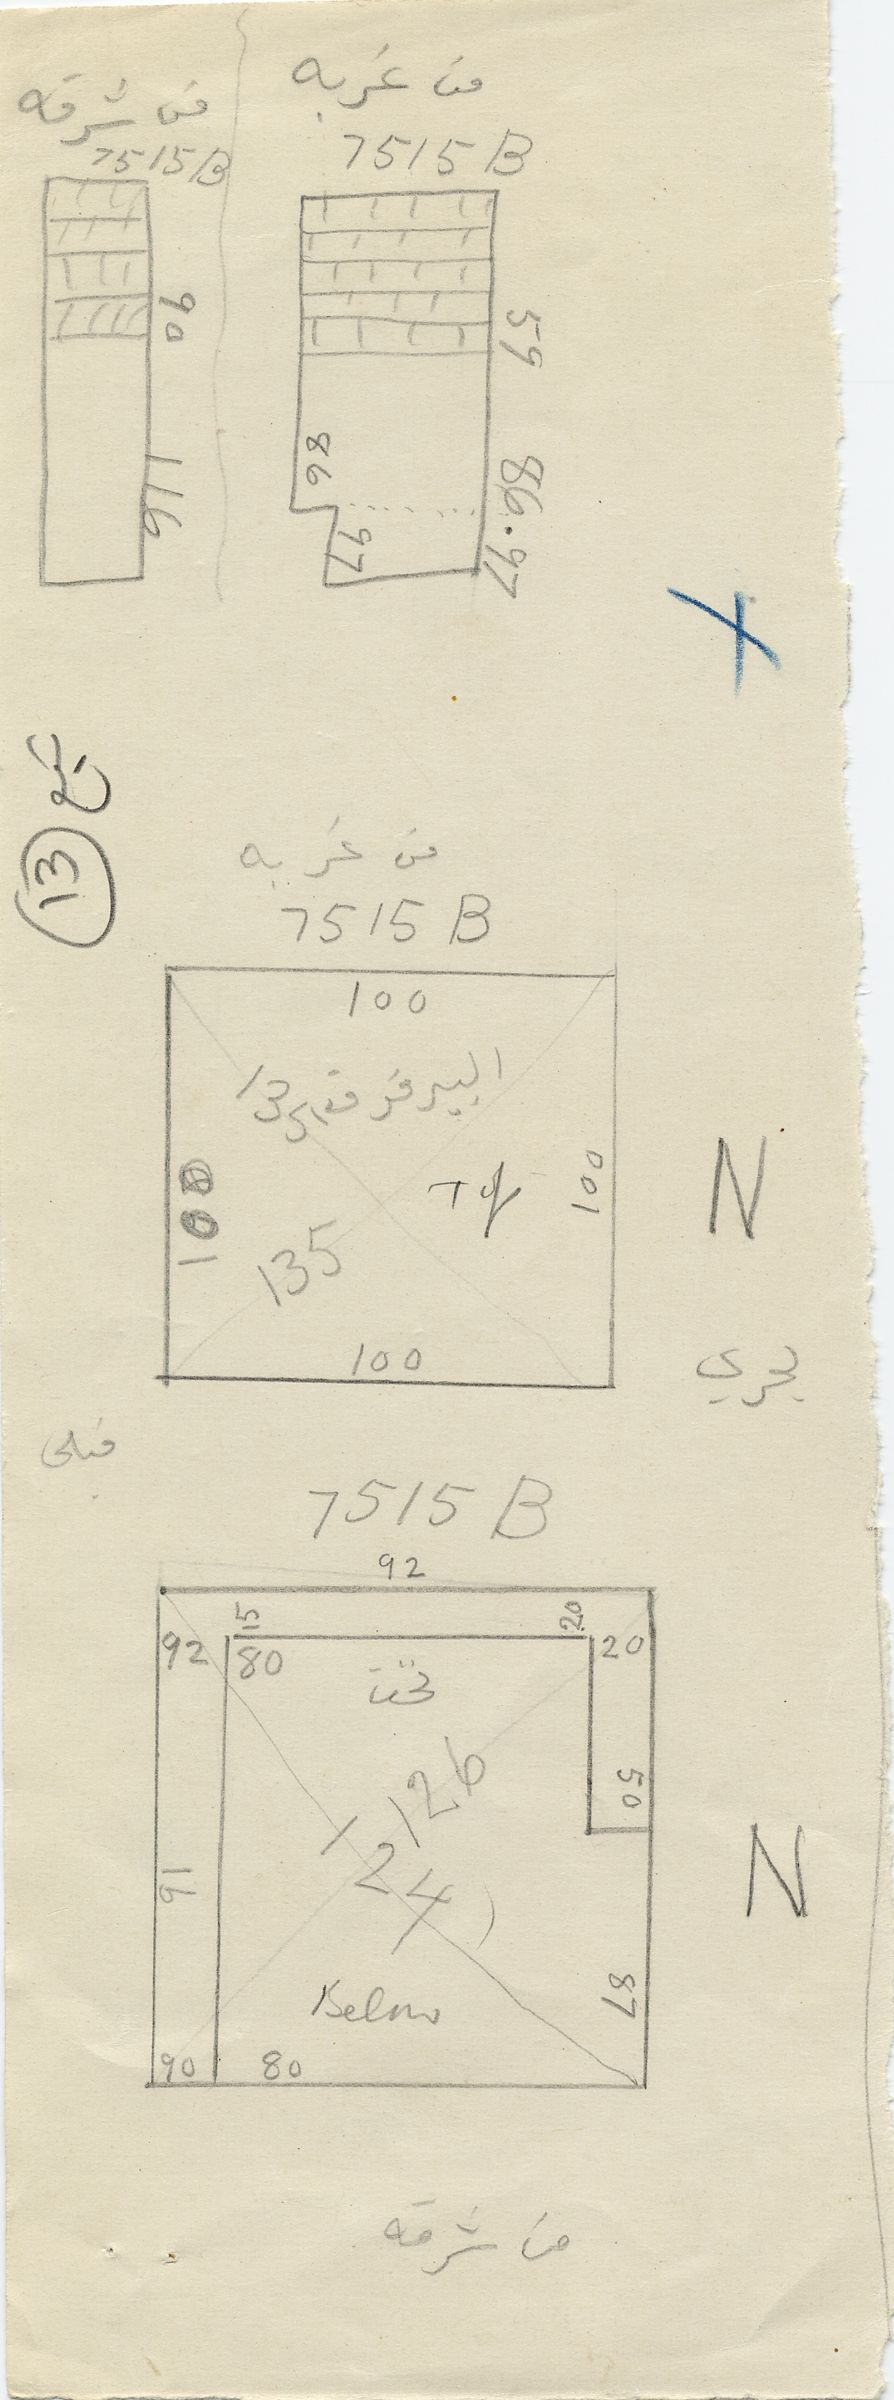 Maps and plans: G 7515, Shaft B